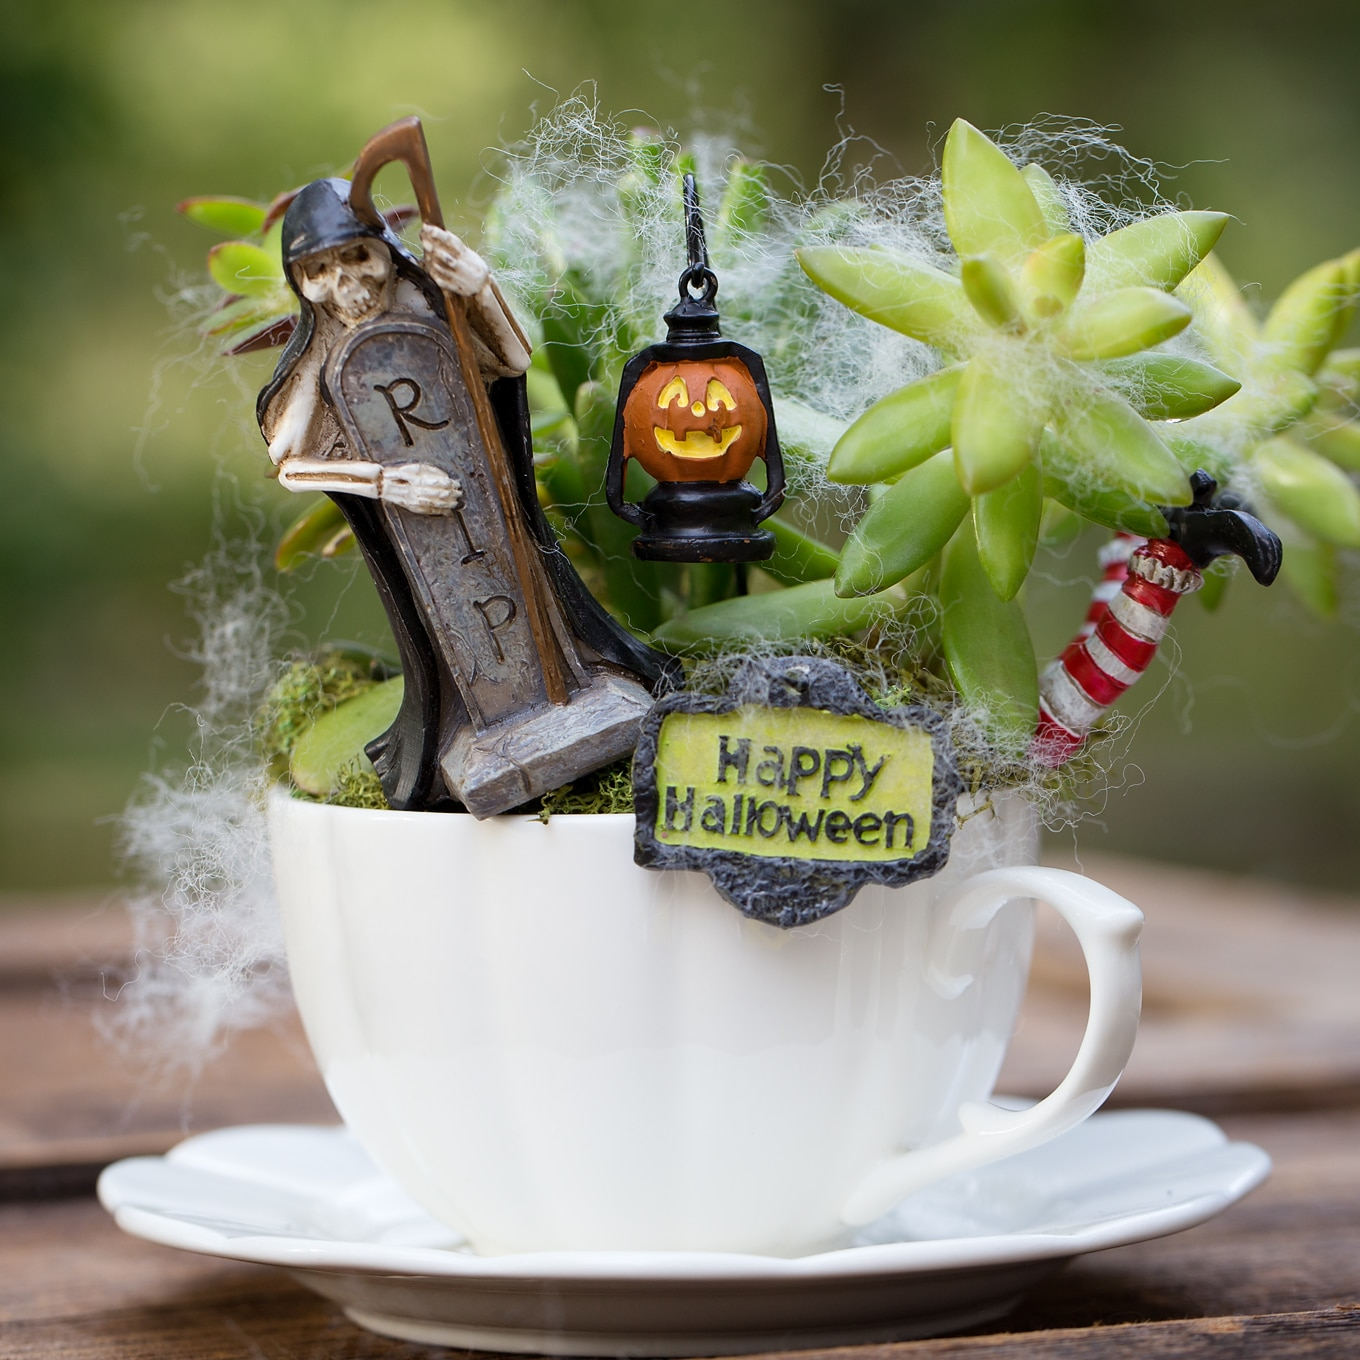 Make a Halloween Teacup Garden